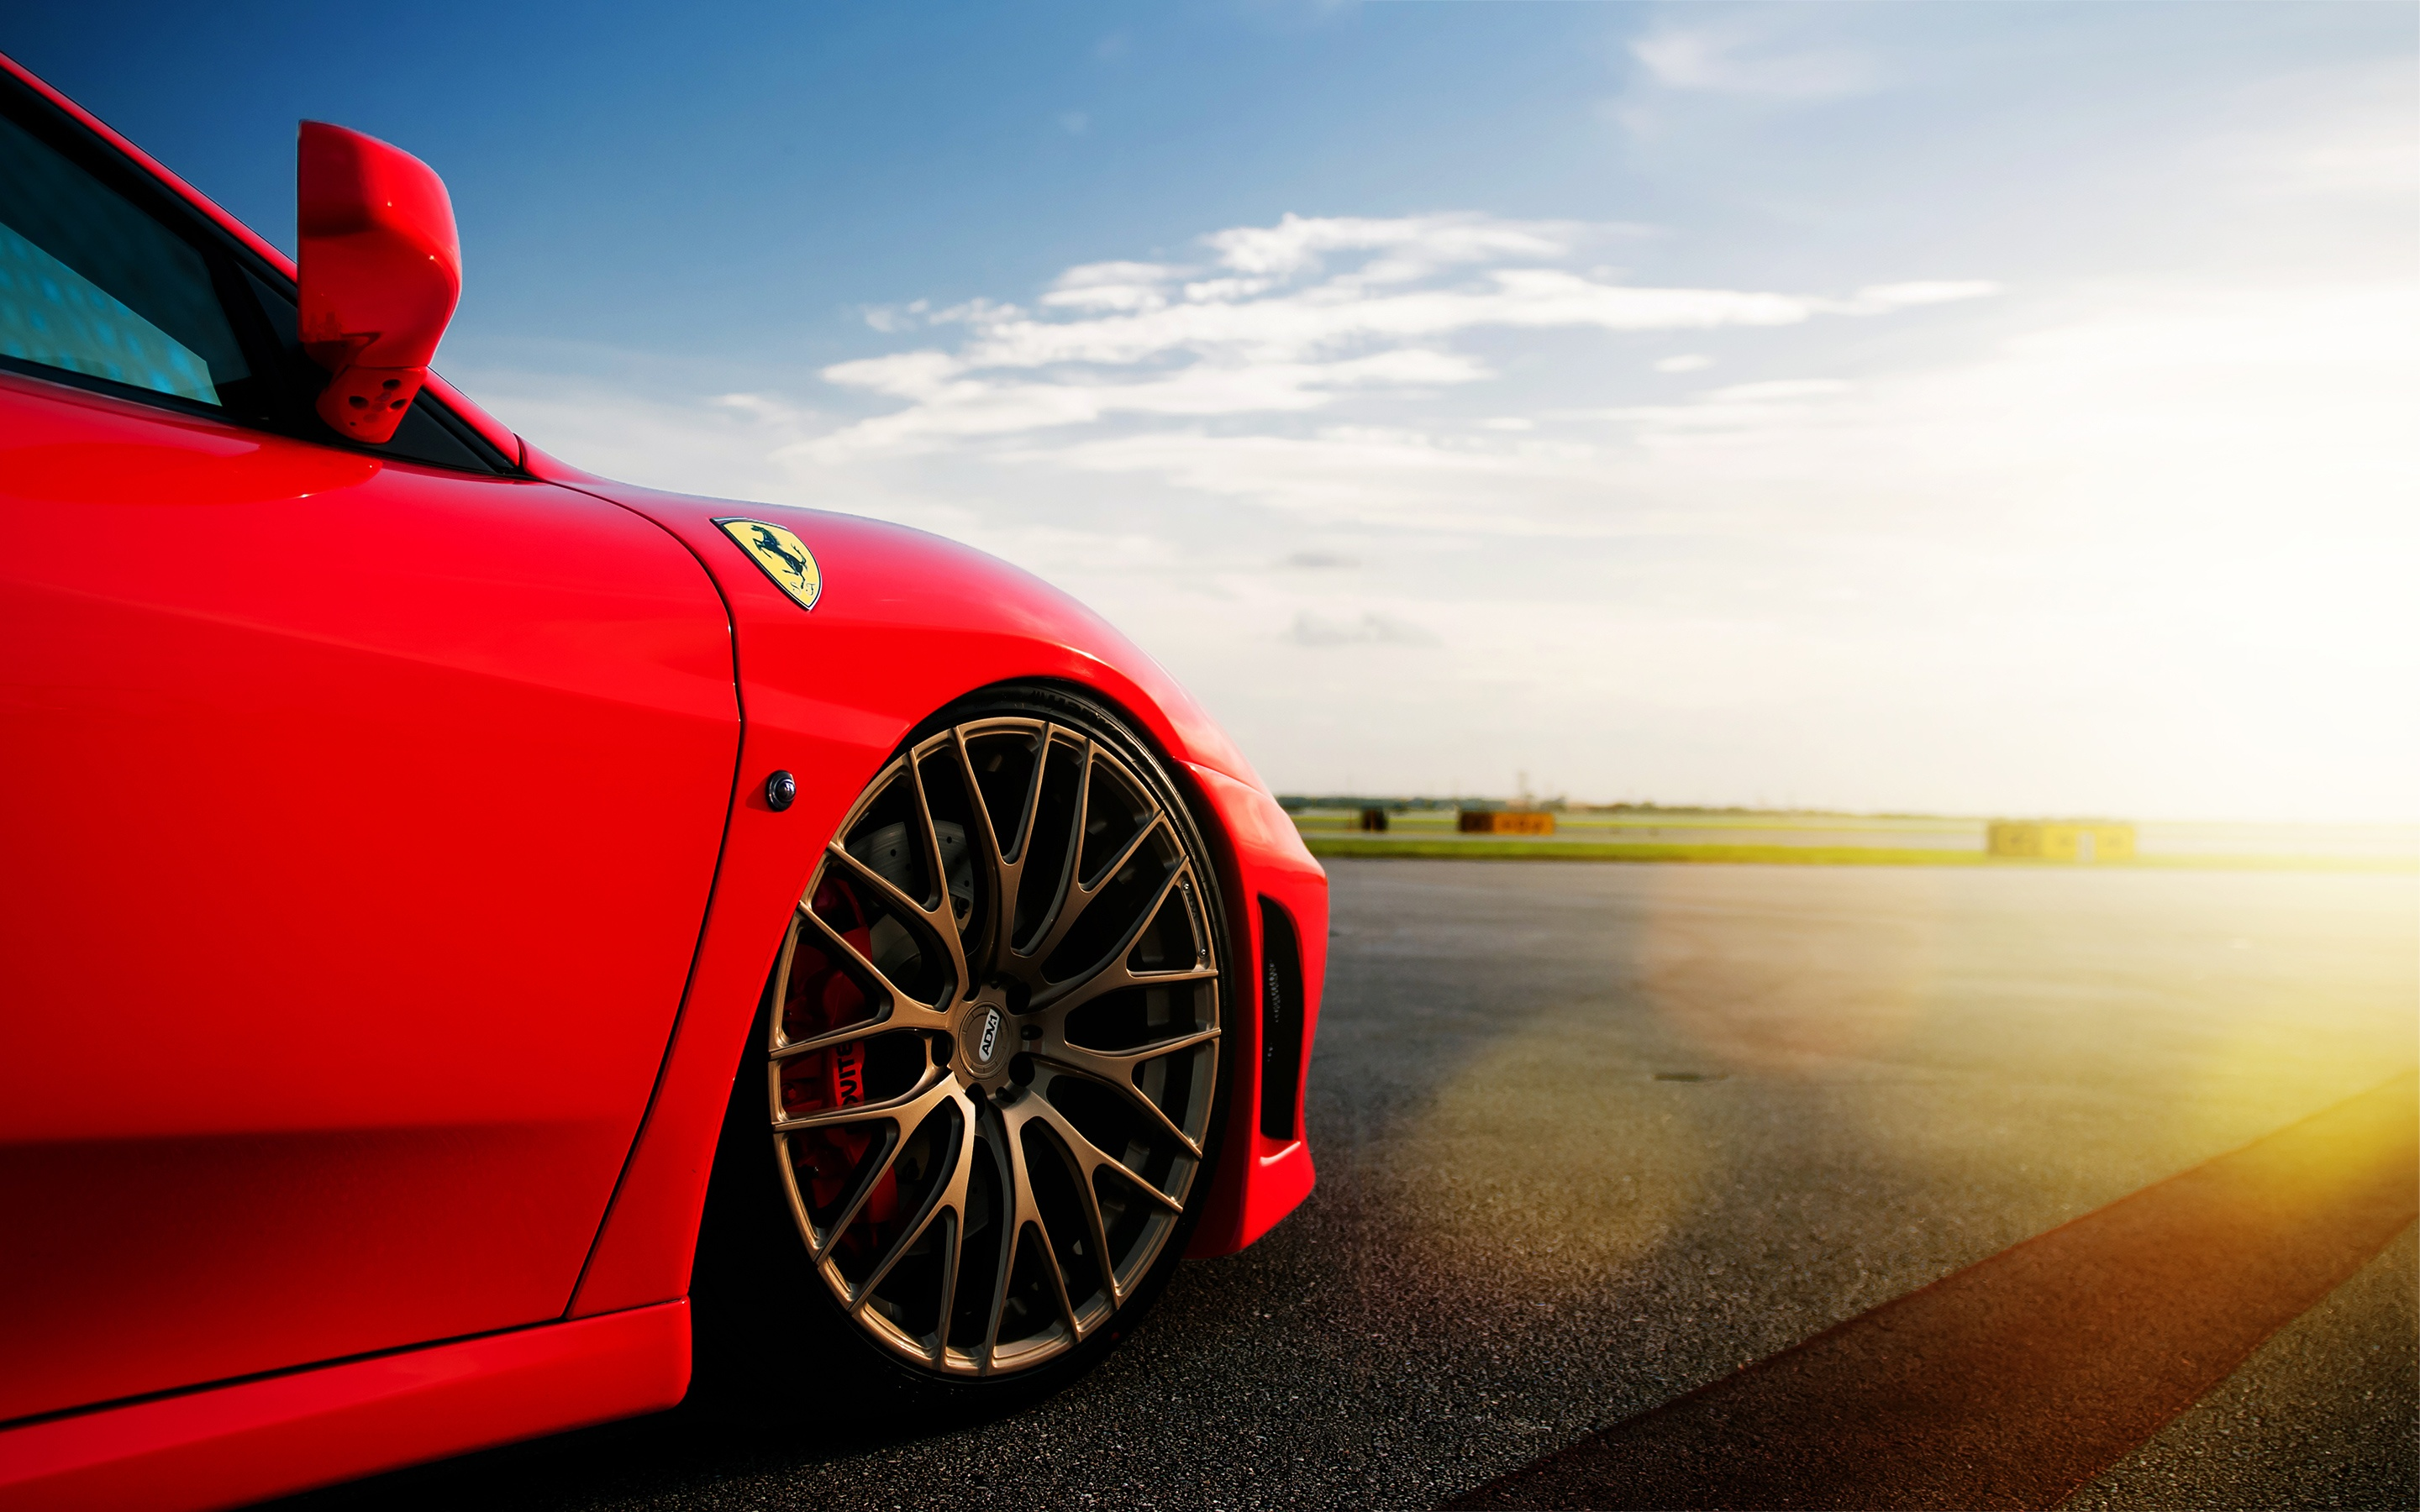 Download Ferrari Wallpaper Wide Background #14504